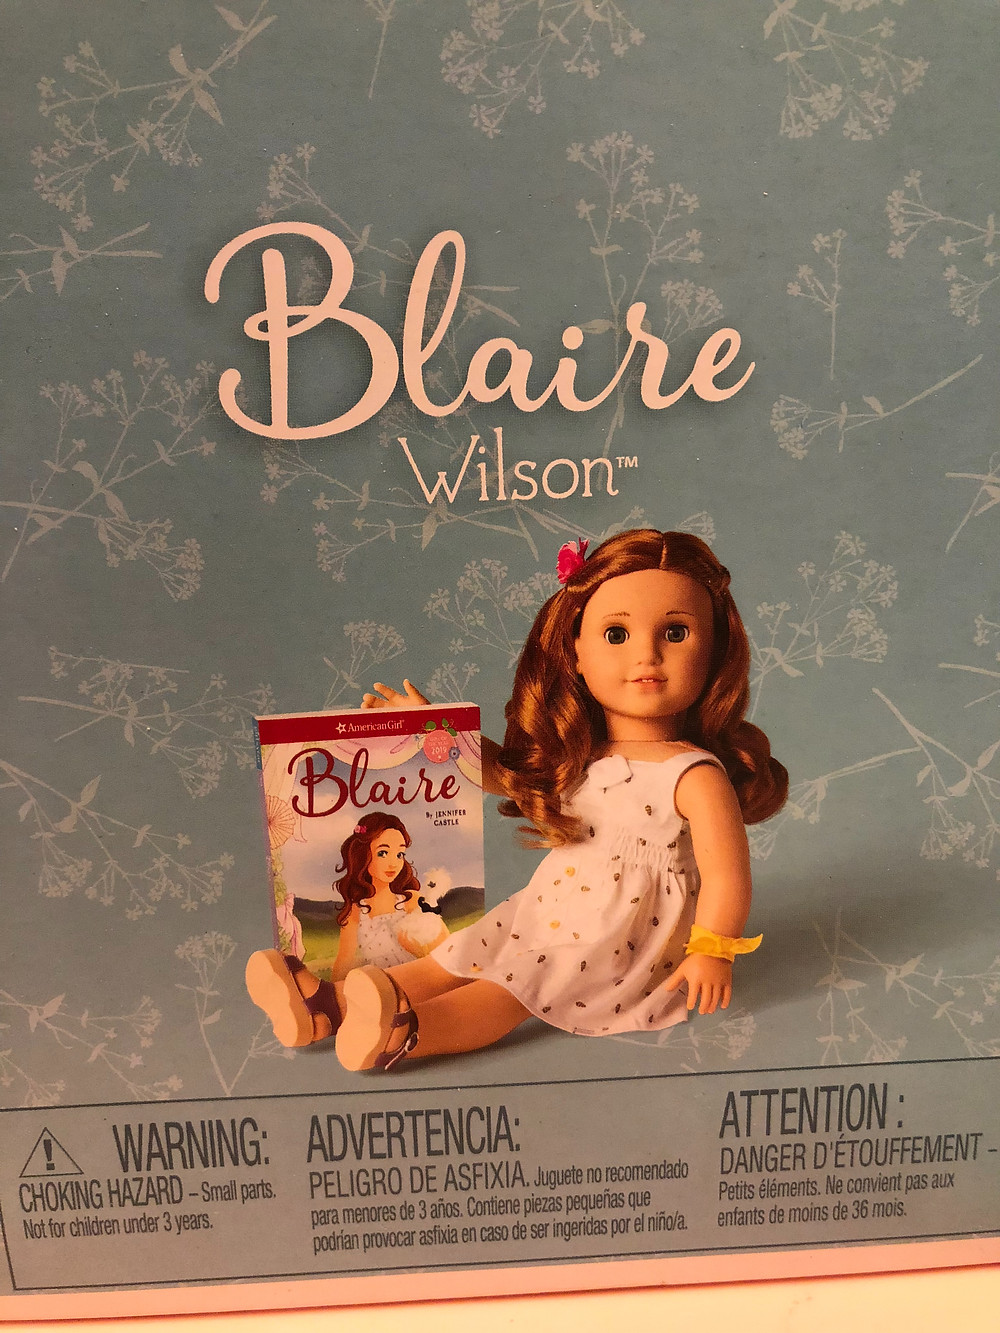 American Girl Doll, GOTY 2019, Girl of the Year 2019, Blaire Wilson, American Girl Blaire, American Girl Doll Blaire, American Girl Blaire WilsonAmerican Girl Doll, GOTY 2019, Girl of the Year 2019, Blaire Wilson, American Girl Blaire, American Girl Doll Blaire, American Girl Blaire WilsonAmerican Girl Doll, GOTY 2019, Girl of the Year 2019, Blaire Wilson, American Girl Blaire, American Girl Doll Blaire, American Girl Blaire WilsonAmerican Girl Doll, GOTY 2019, Girl of the Year 2019, Blaire Wilson, American Girl Blaire, American Girl Doll Blaire, American Girl Blaire WilsonAmerican Girl Doll, GOTY 2019, Girl of the Year 2019, Blaire Wilson, American Girl Blaire, American Girl Doll Blaire, American Girl Blaire WilsonAmerican Girl Doll, GOTY 2019, Girl of the Year 2019, Blaire Wilson, American Girl Blaire, American Girl Doll Blaire, American Girl Blaire WilsonAmerican Girl Doll, GOTY 2019, Girl of the Year 2019, Blaire Wilson, American Girl Blaire, American Girl Doll Blaire, American Girl Blaire WilsonAmerican Girl Doll, GOTY 2019, Girl of the Year 2019, Blaire Wilson, American Girl Blaire, American Girl Doll Blaire, American Girl Blaire Wilson